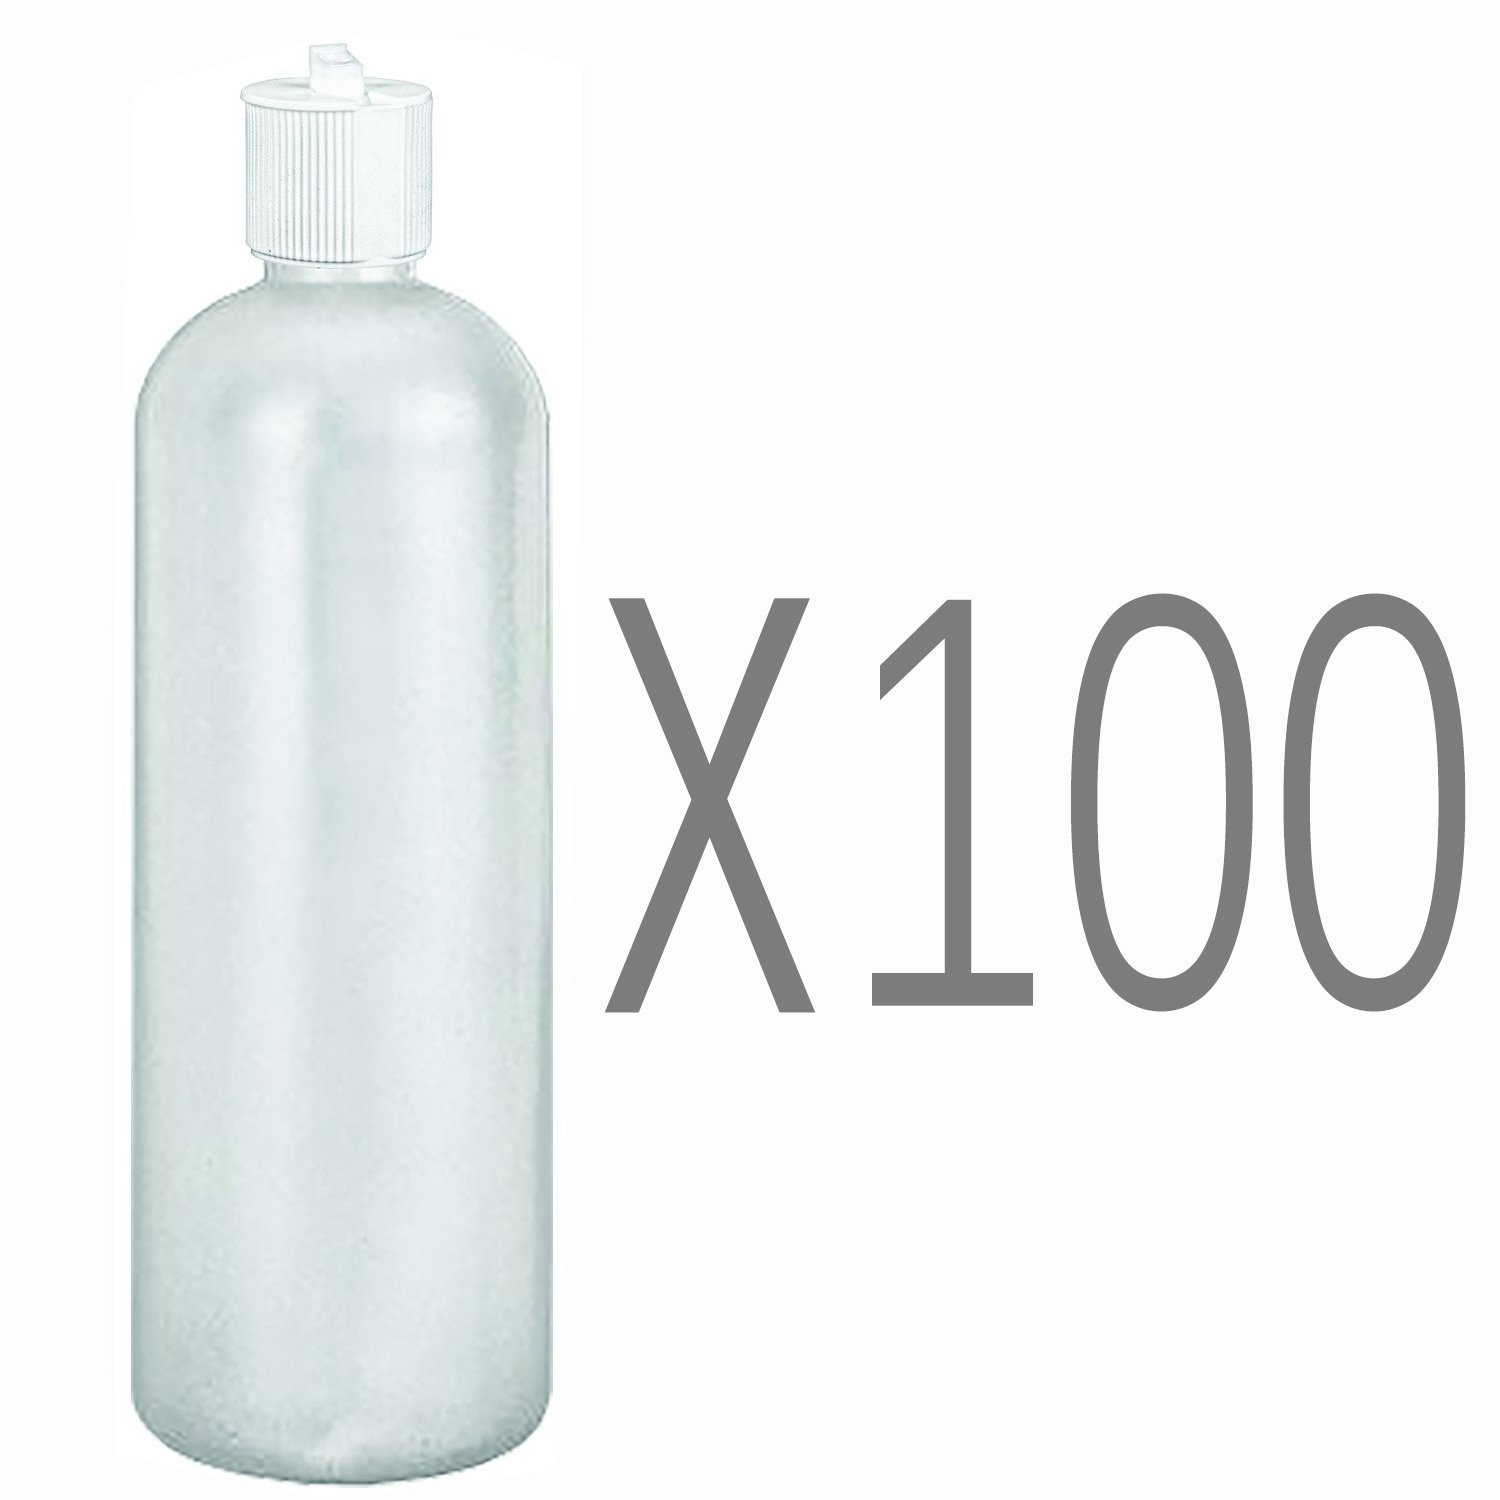 MoYo Natural Labs 32 oz Refillable Squirt Bottles, Empty Travel Containers with Turret Caps, One Quart Travel Bottles, BPA Free HDPE Plastic Squeezable Toiletry/Cosmetics Bottle (Pack of 100, White)